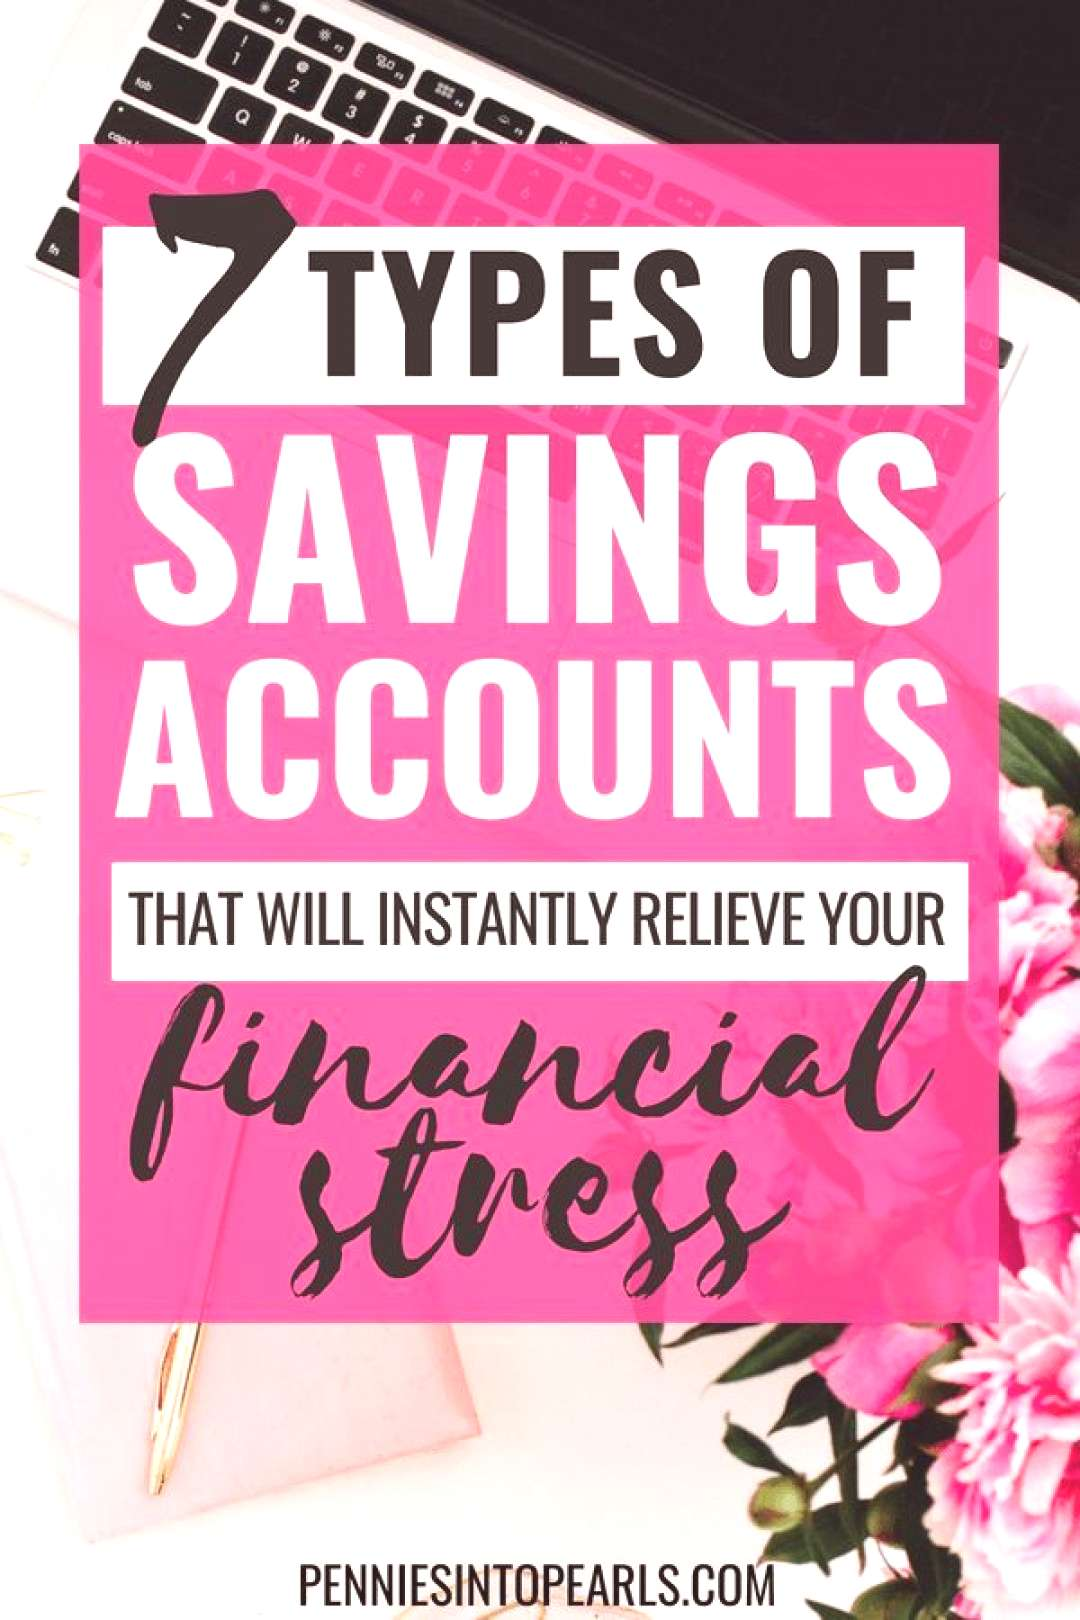 7 Savings Accounts Your Family Will Be Lost Without! - Pennies into Pearls 7 Savings accounts that